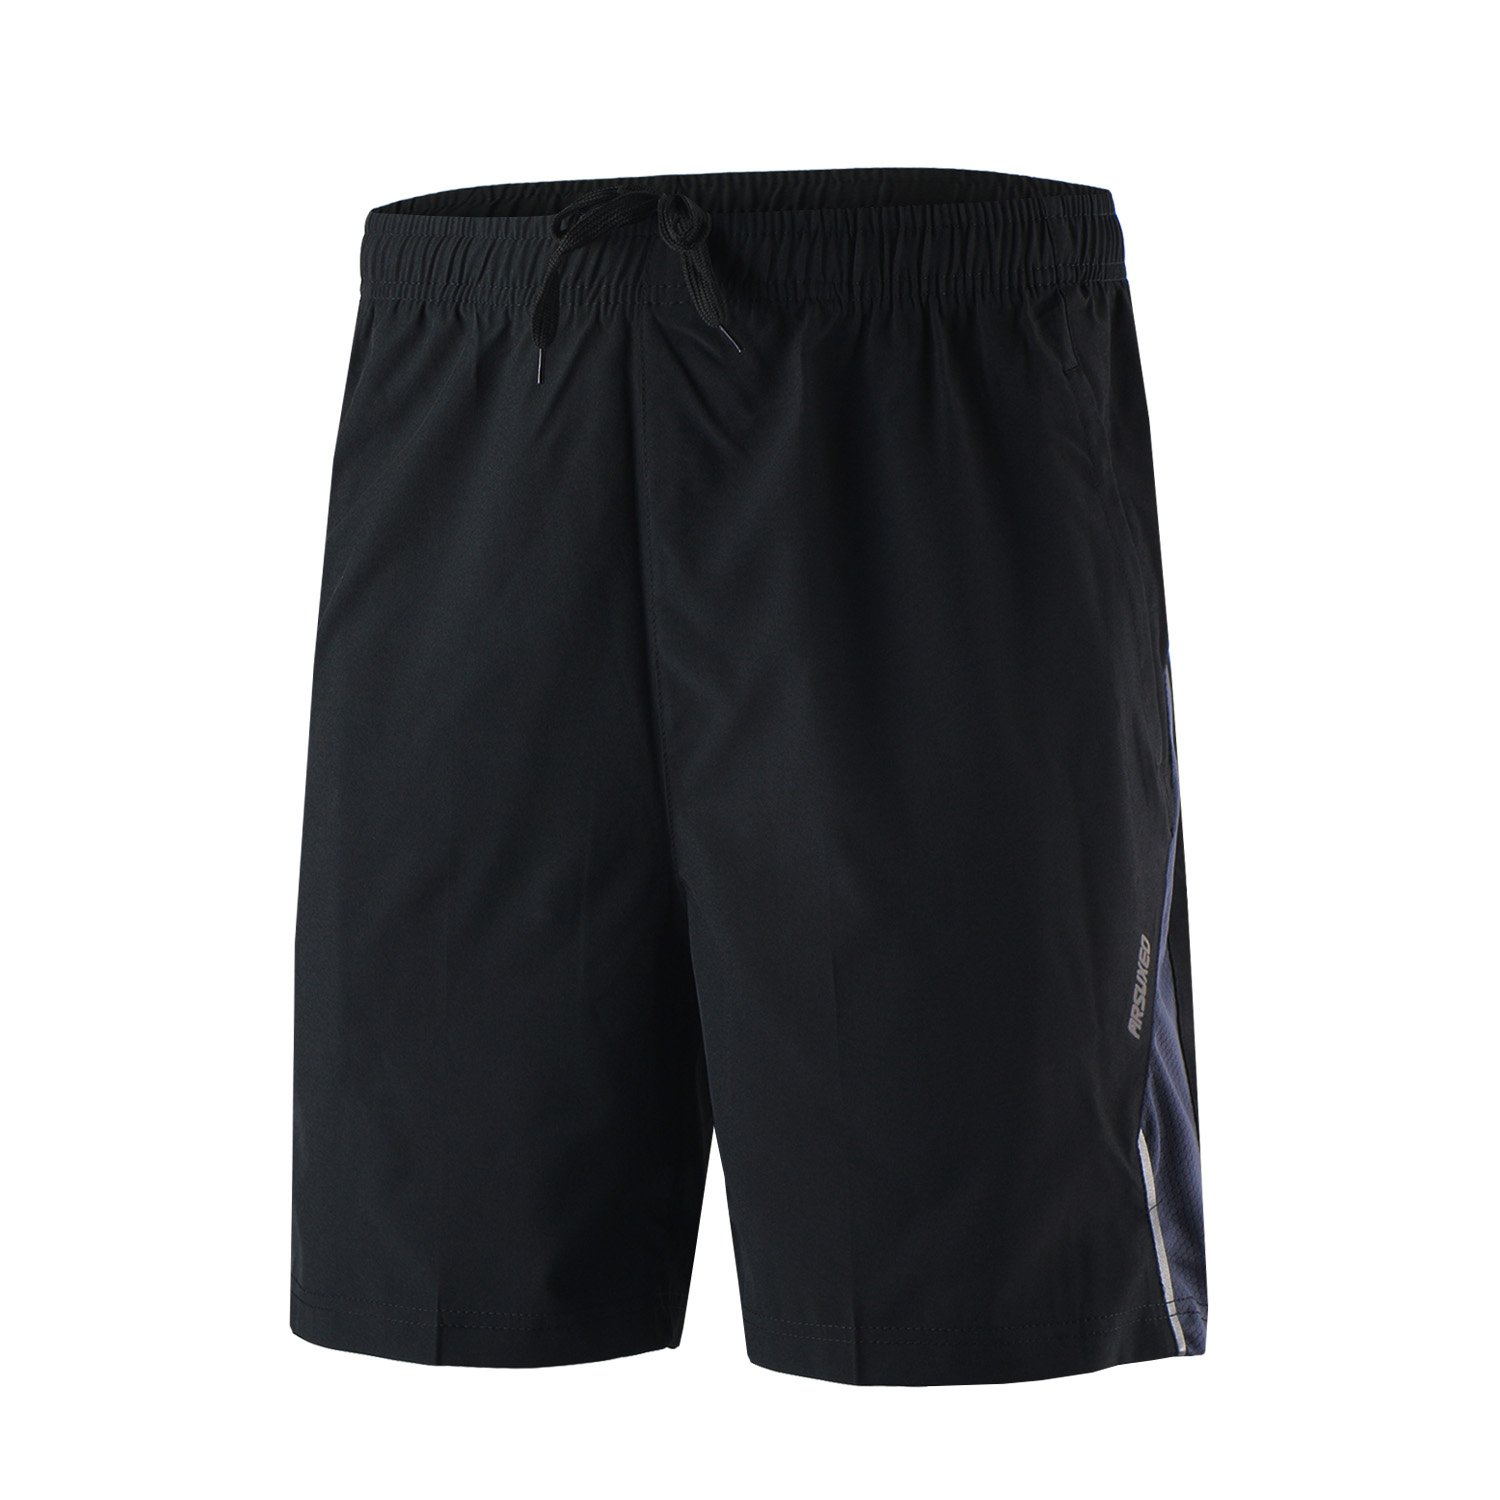 TOFERN Men's Baggy Reflective Running Workout Training Gym Sports Shorts with Zip Pockets